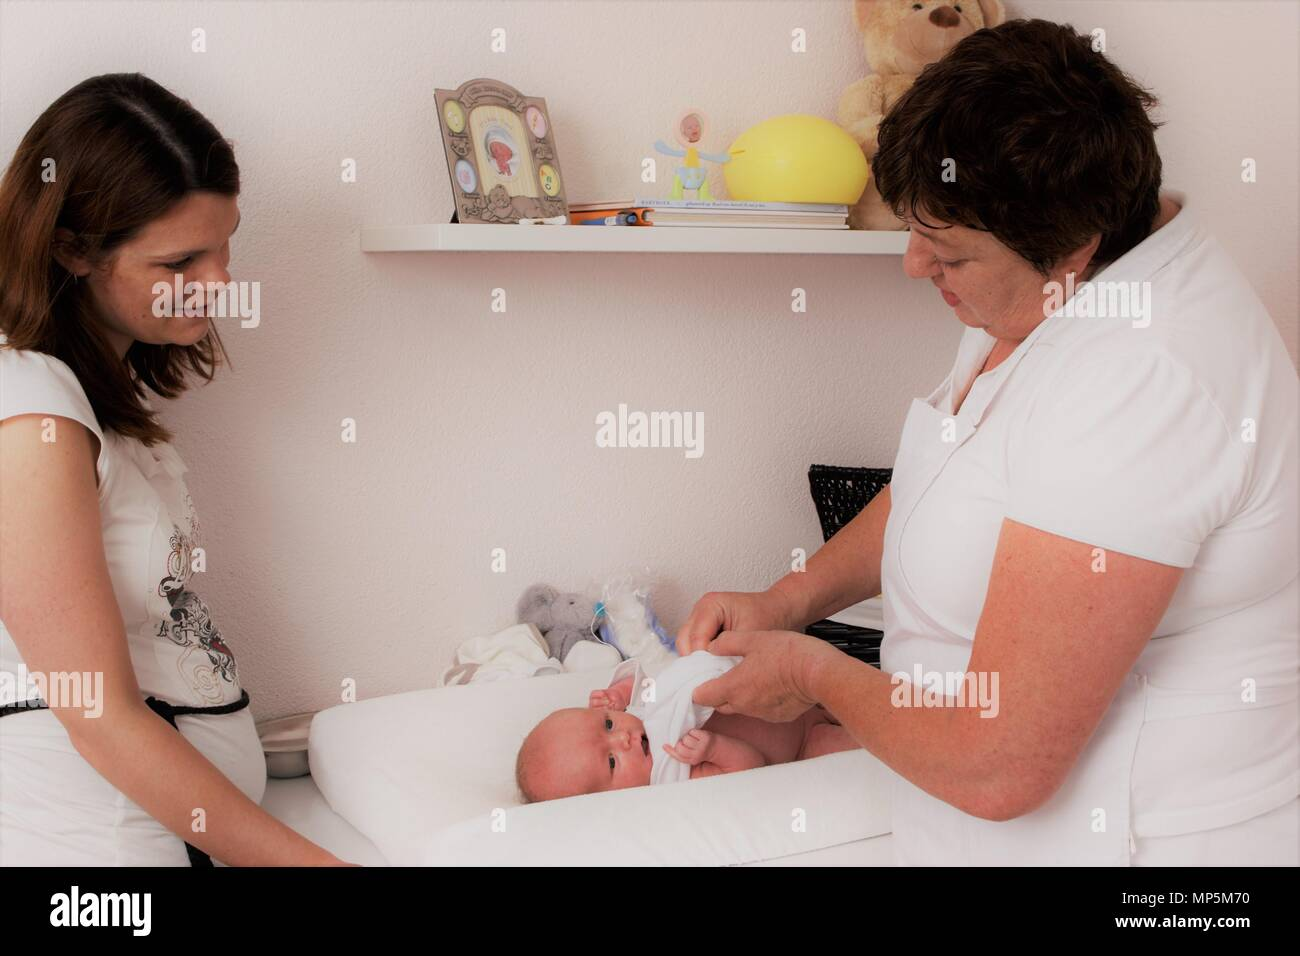 67a0f5f7578db Dutch maternity nurse dressing up newborn baby, assisting the new mother as  part of Dutch Kraamzorg.